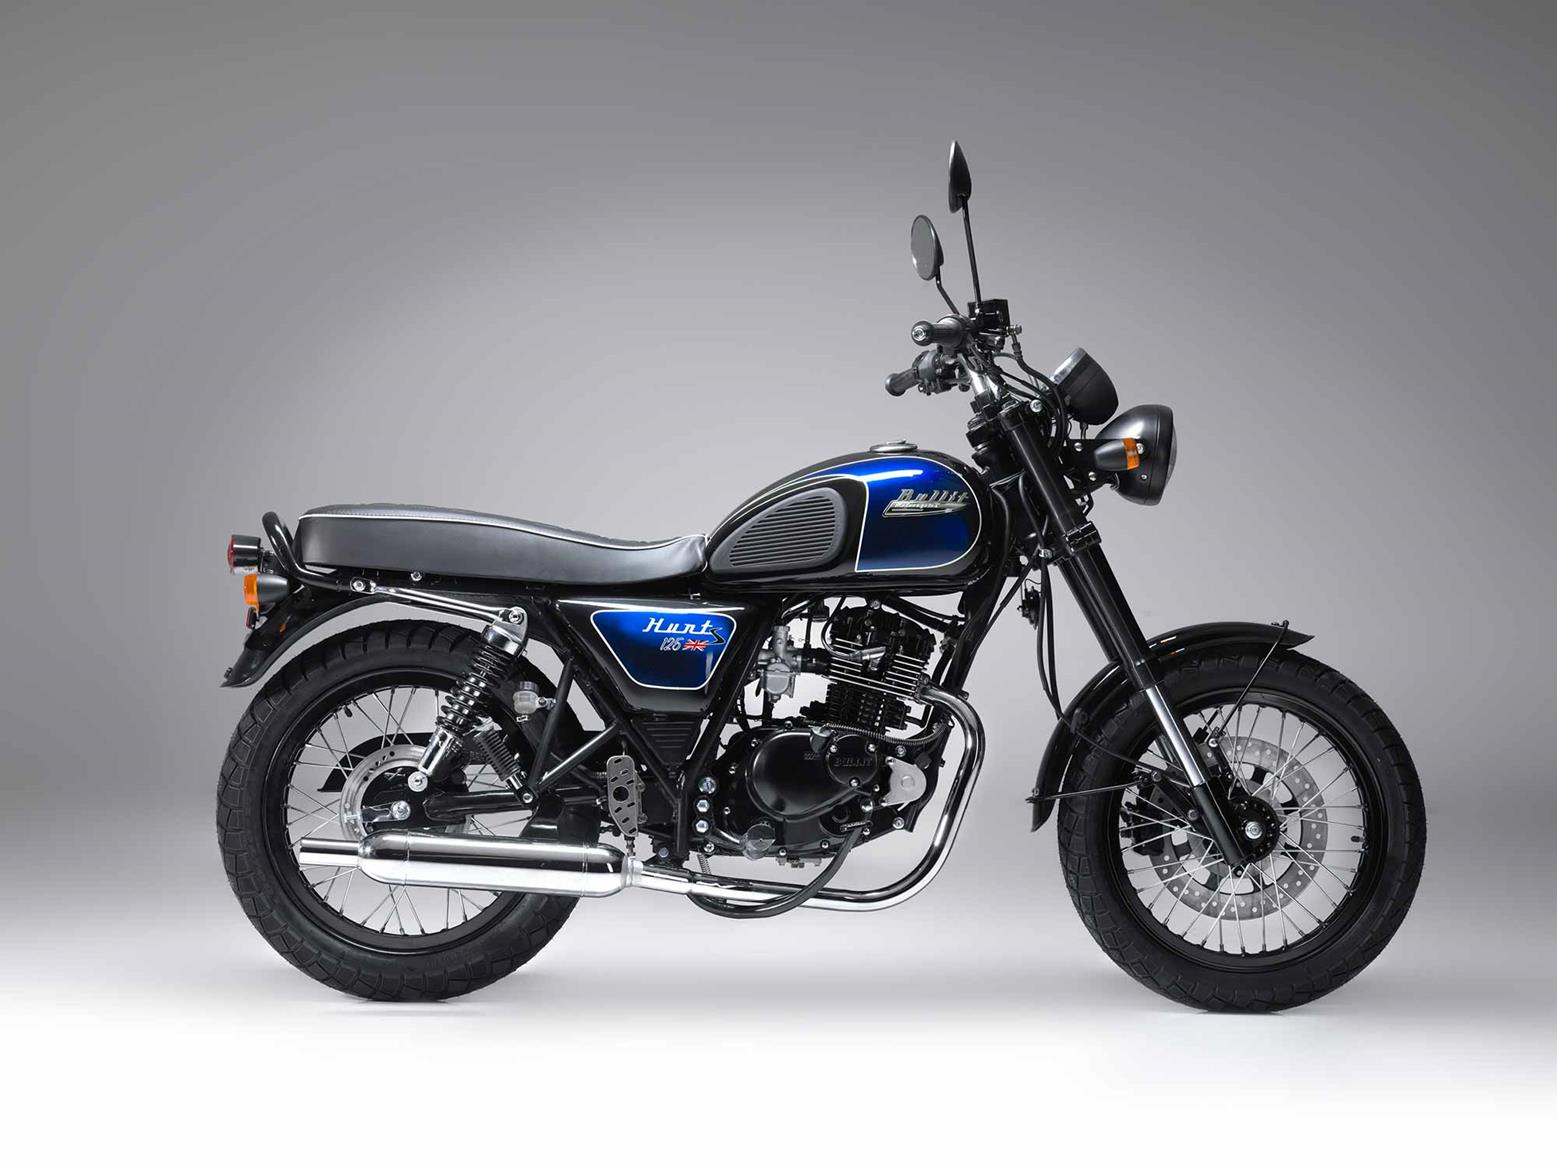 Bullit Hunt S 125 in blue